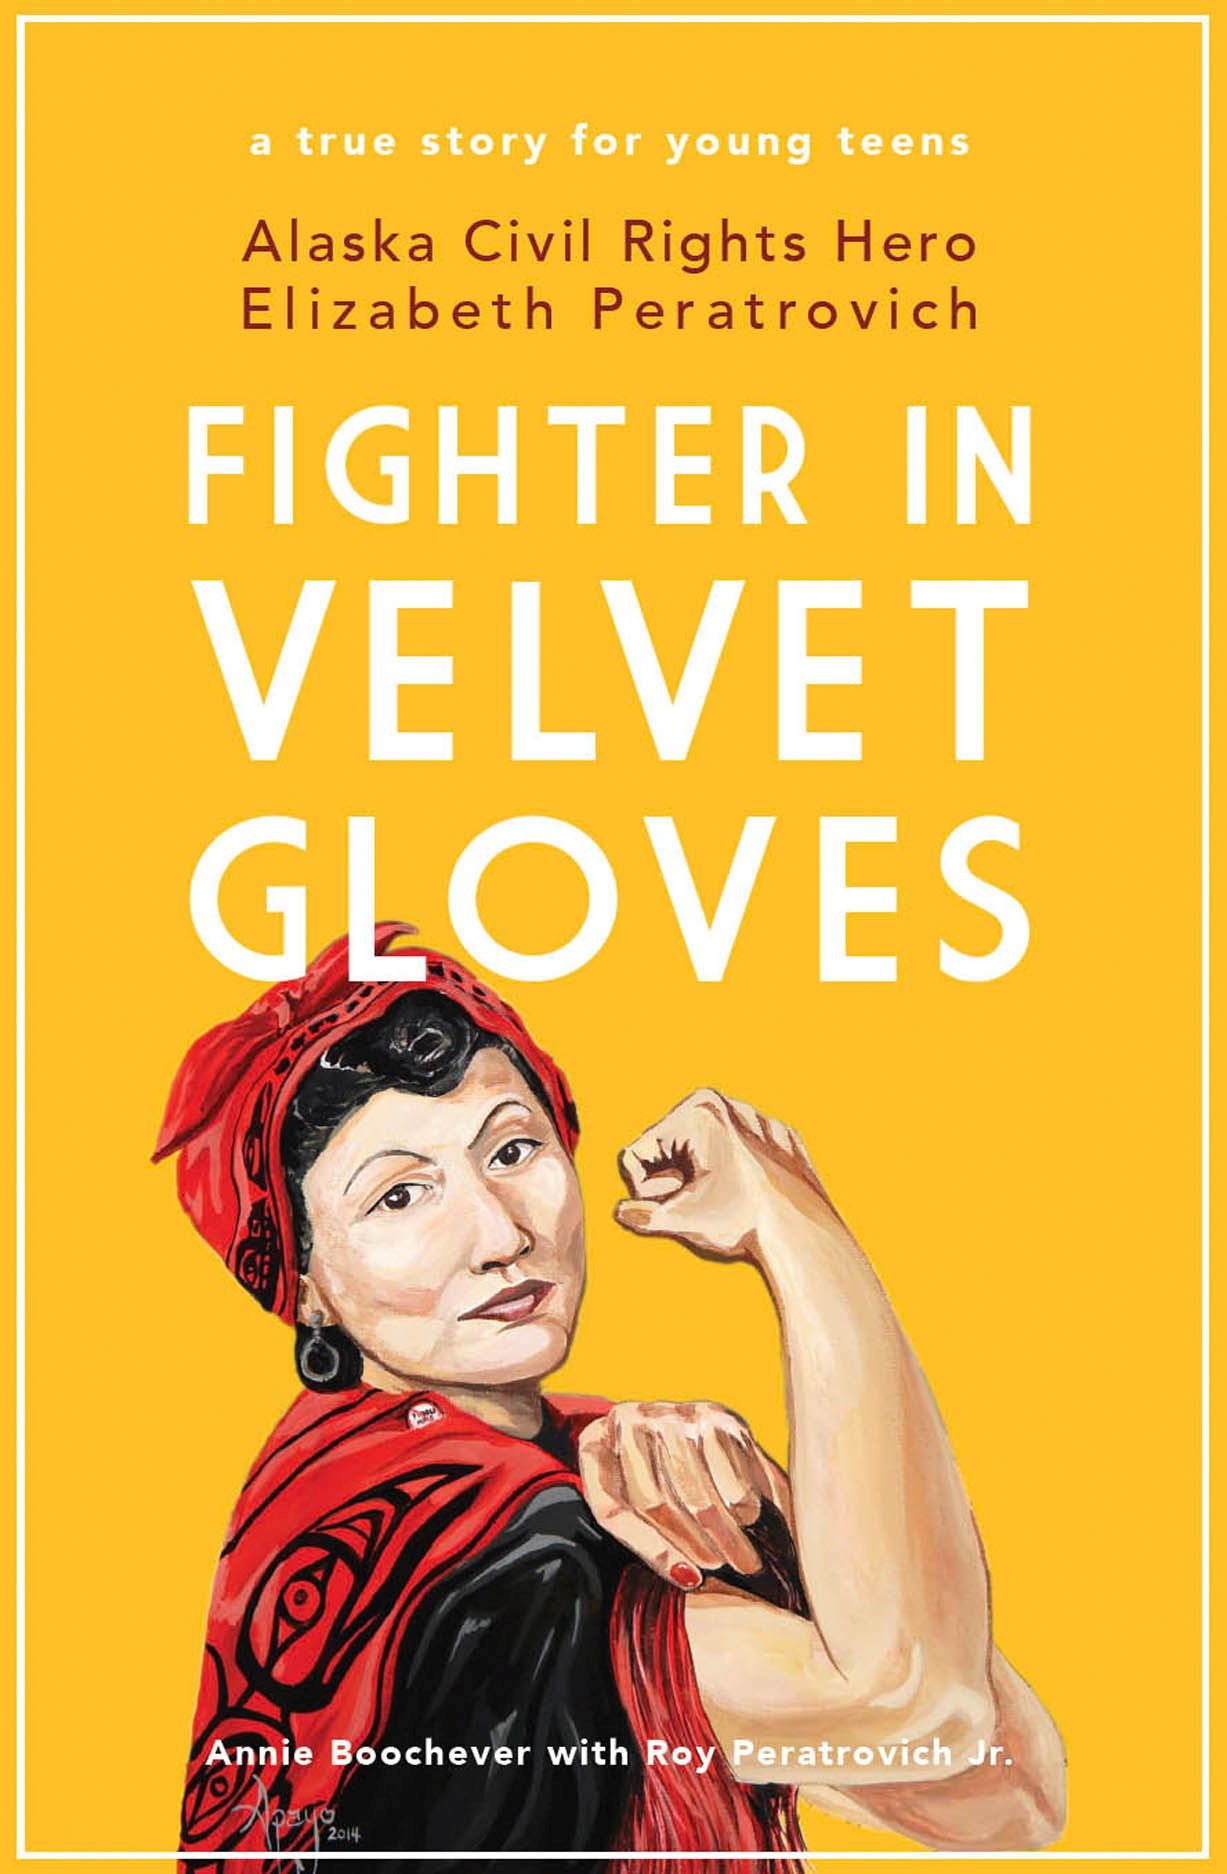 Fighter in Velvet Gloves: Alaska Civil Rights Hero Elizabeth Peratrovich